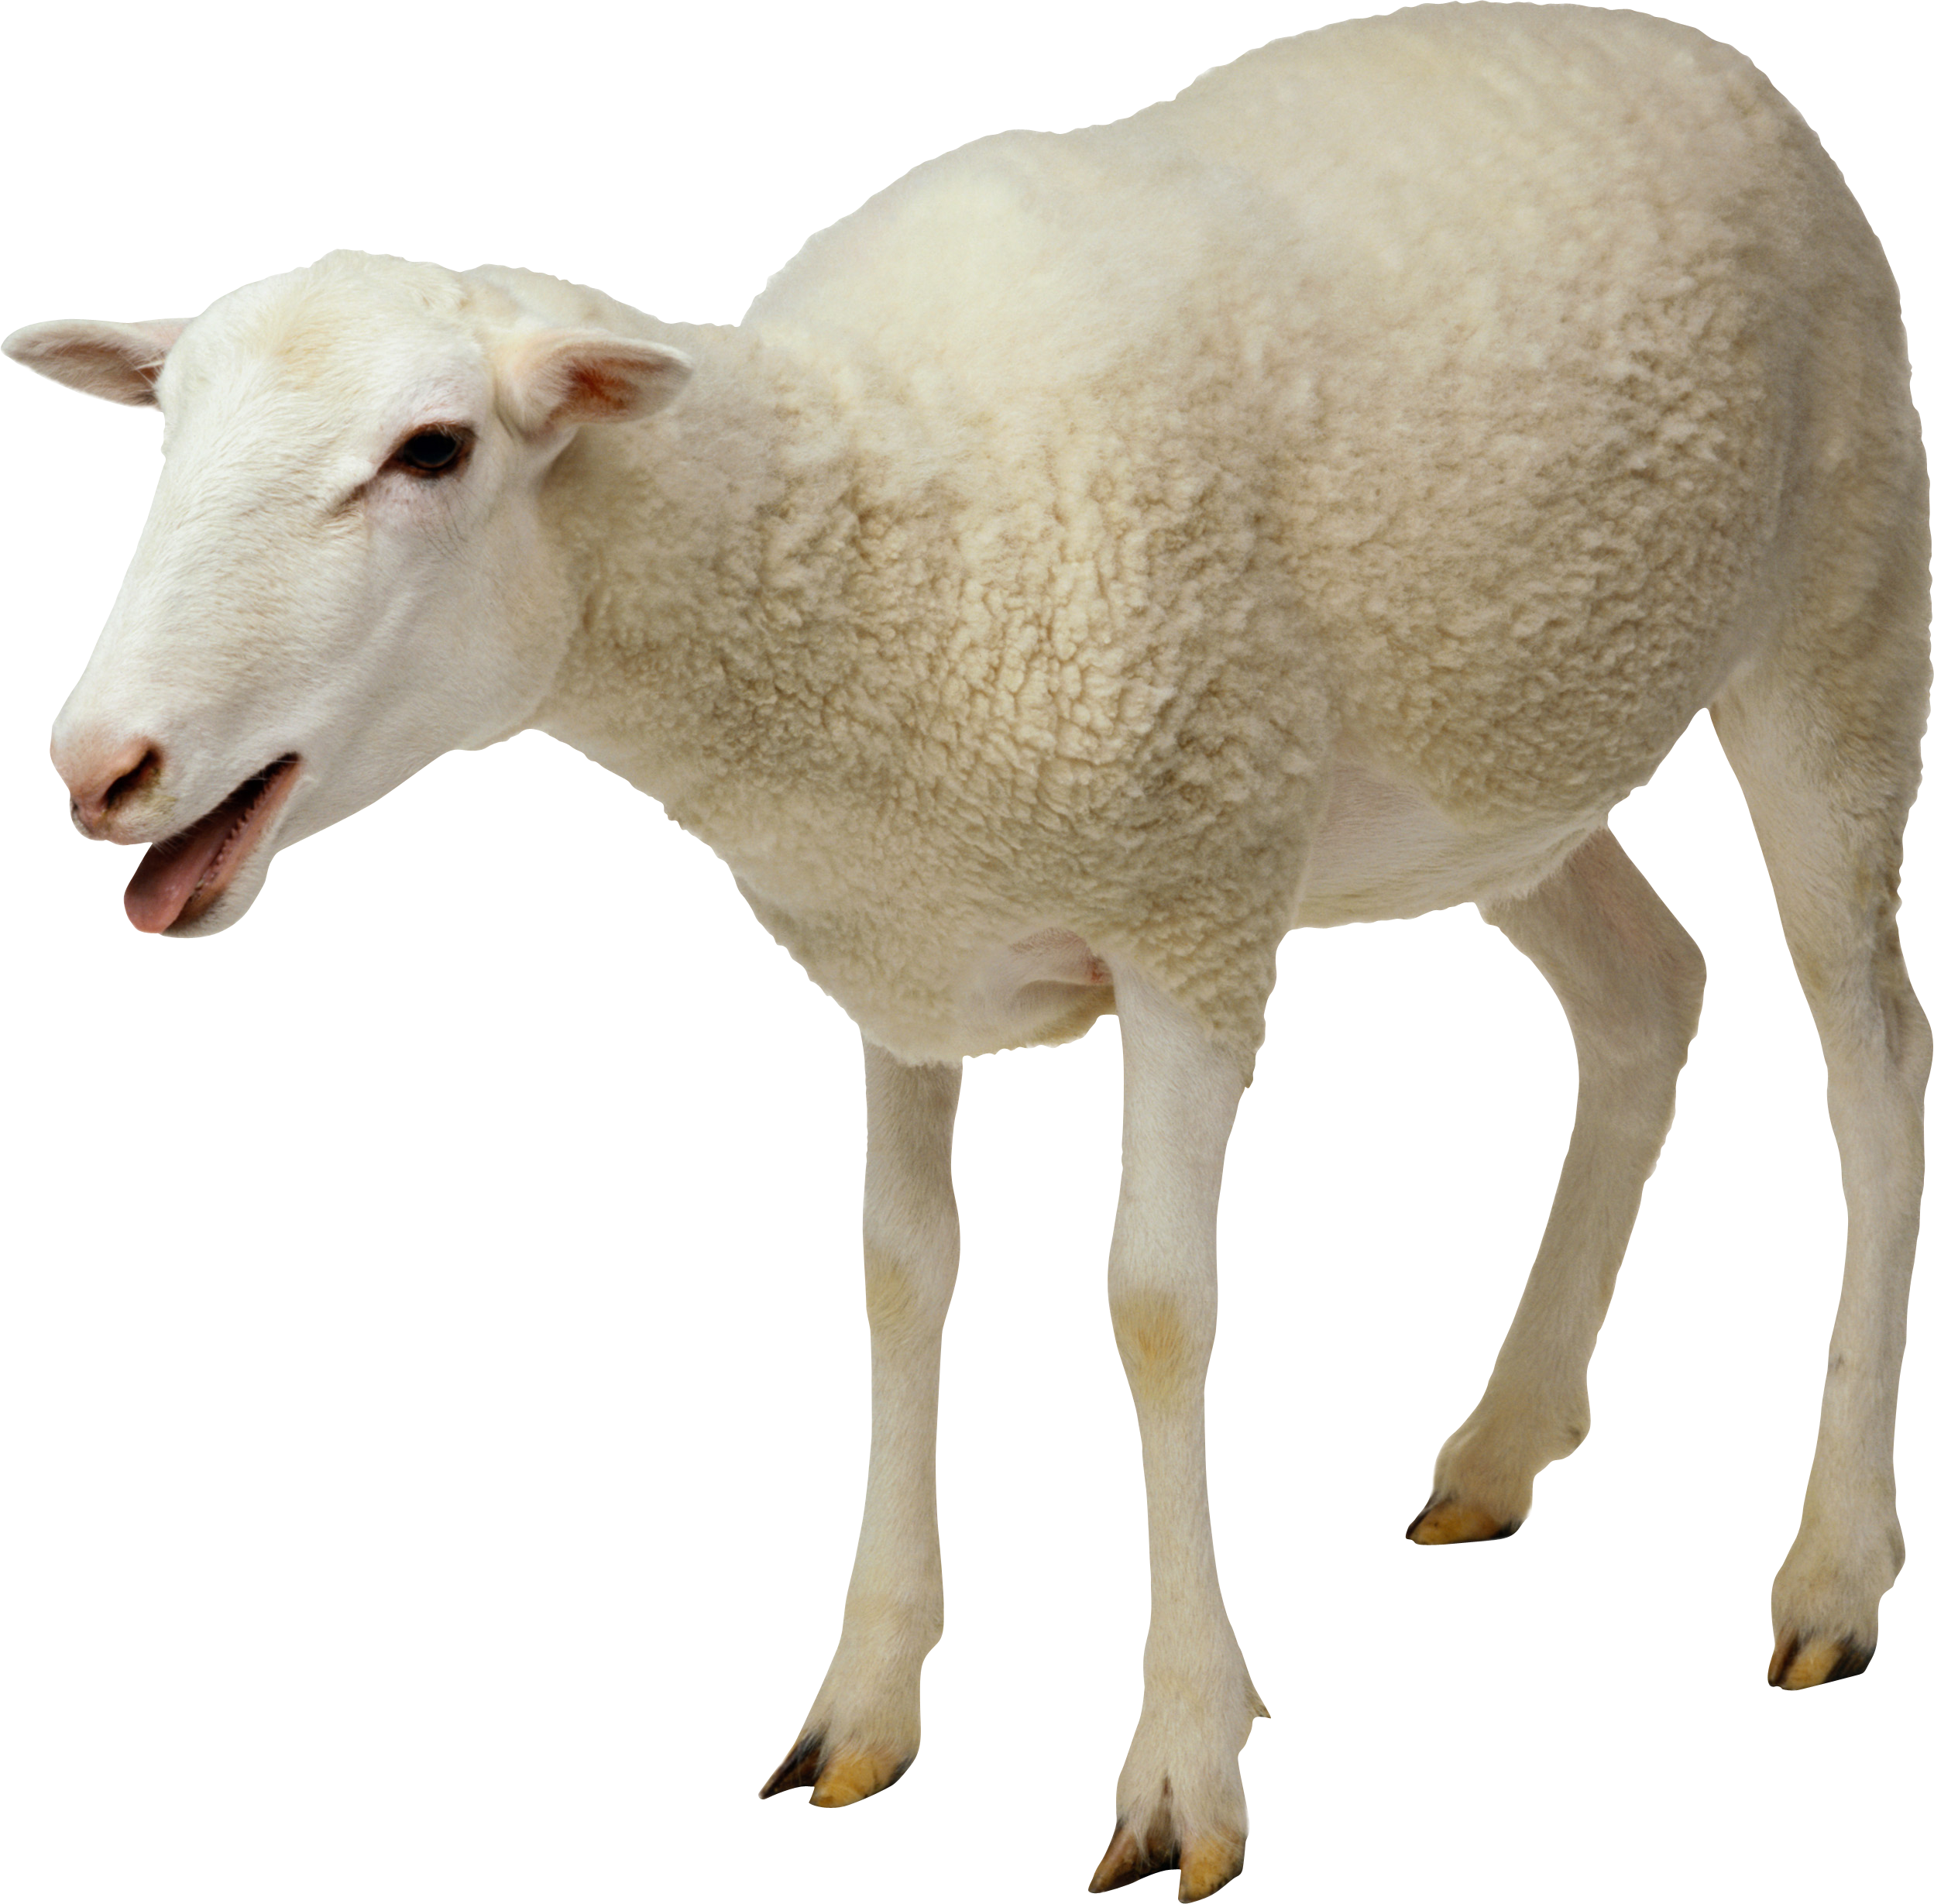 Simple Sheep Image